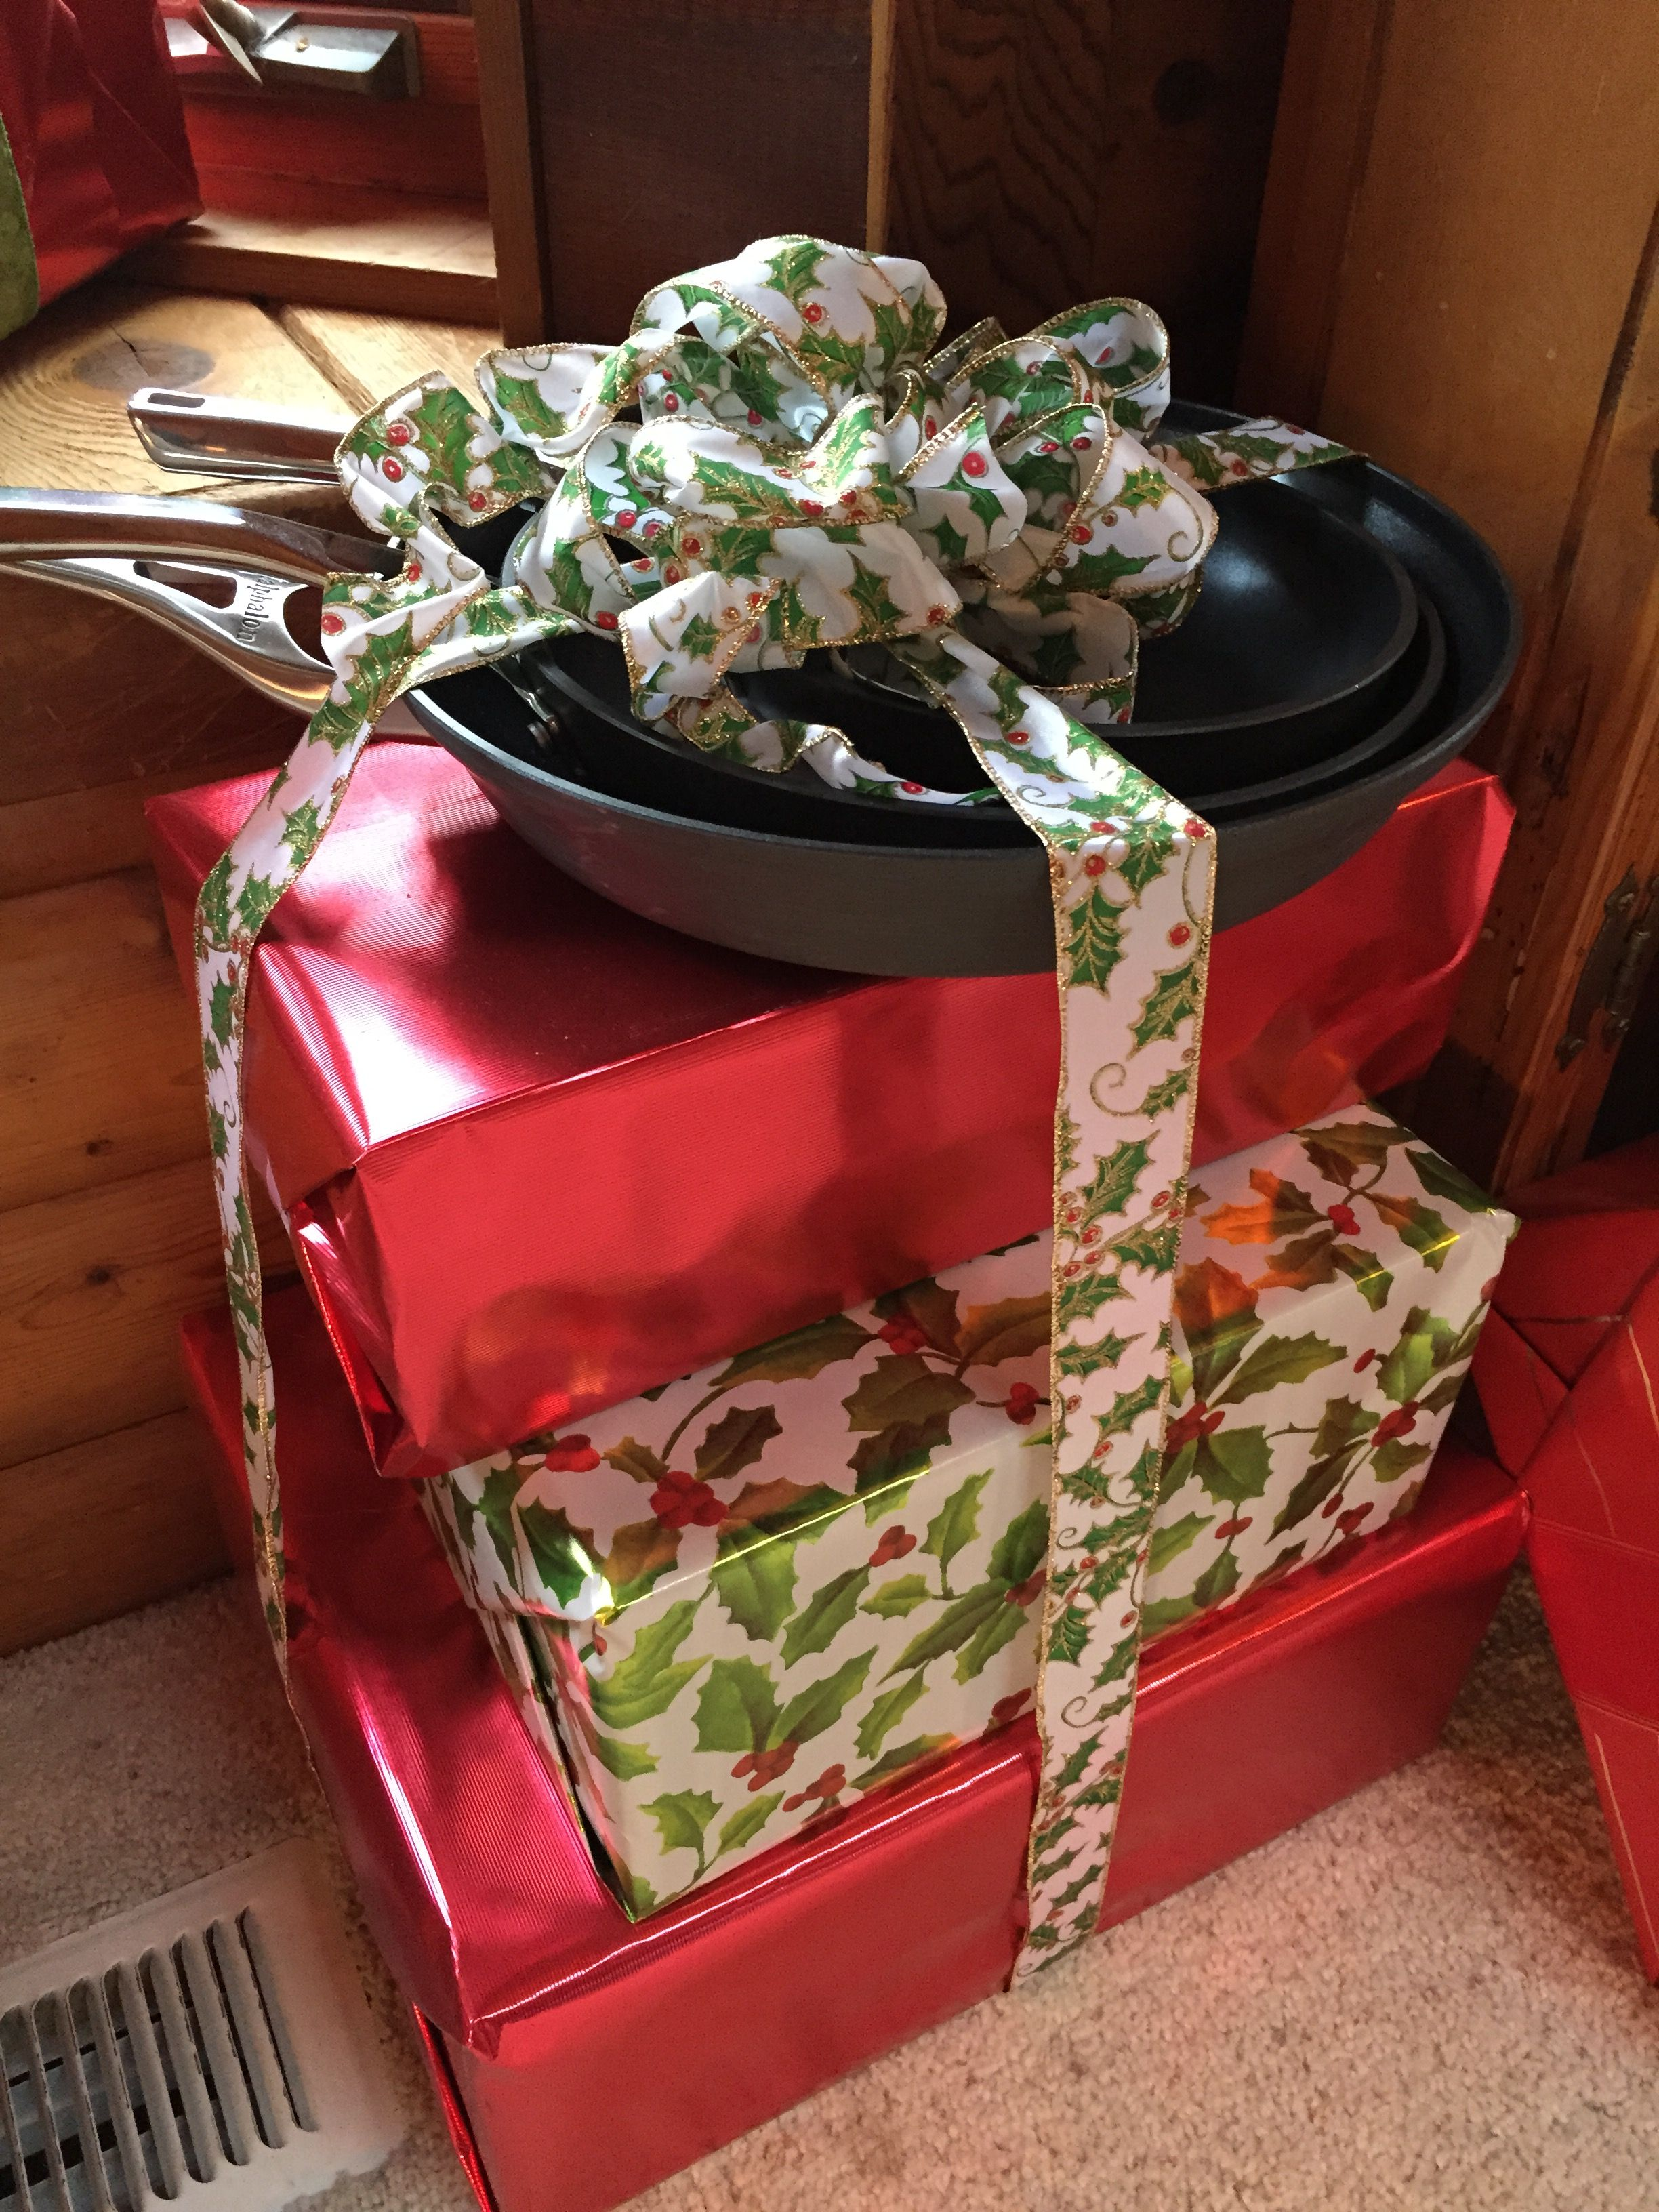 Pin by Dawn Denius on may 18 | Pretty gift wrapping ideas